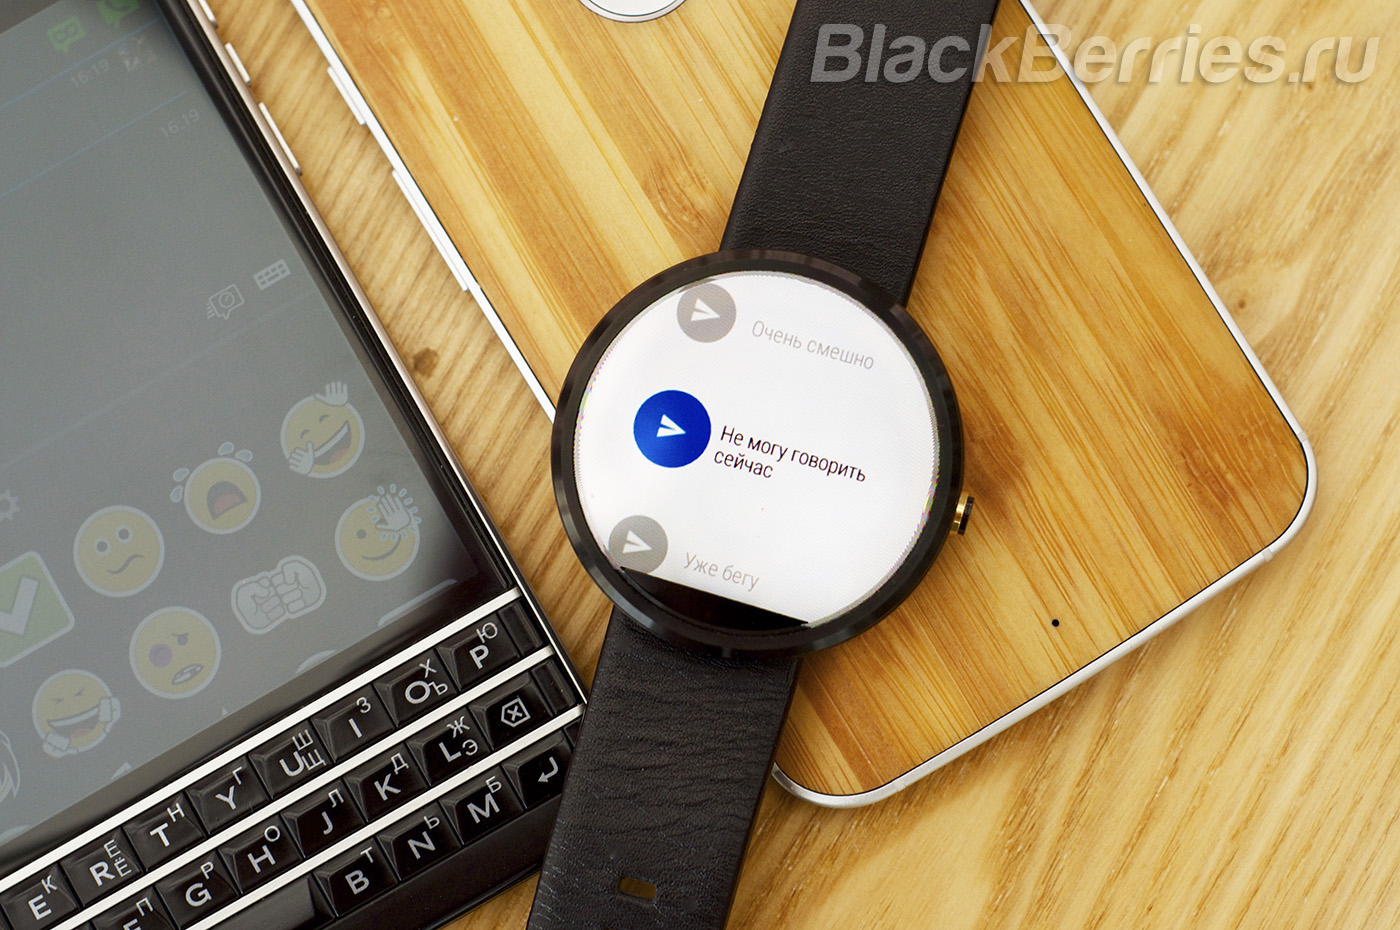 BlackBerry-BBM-Android-Wear-06